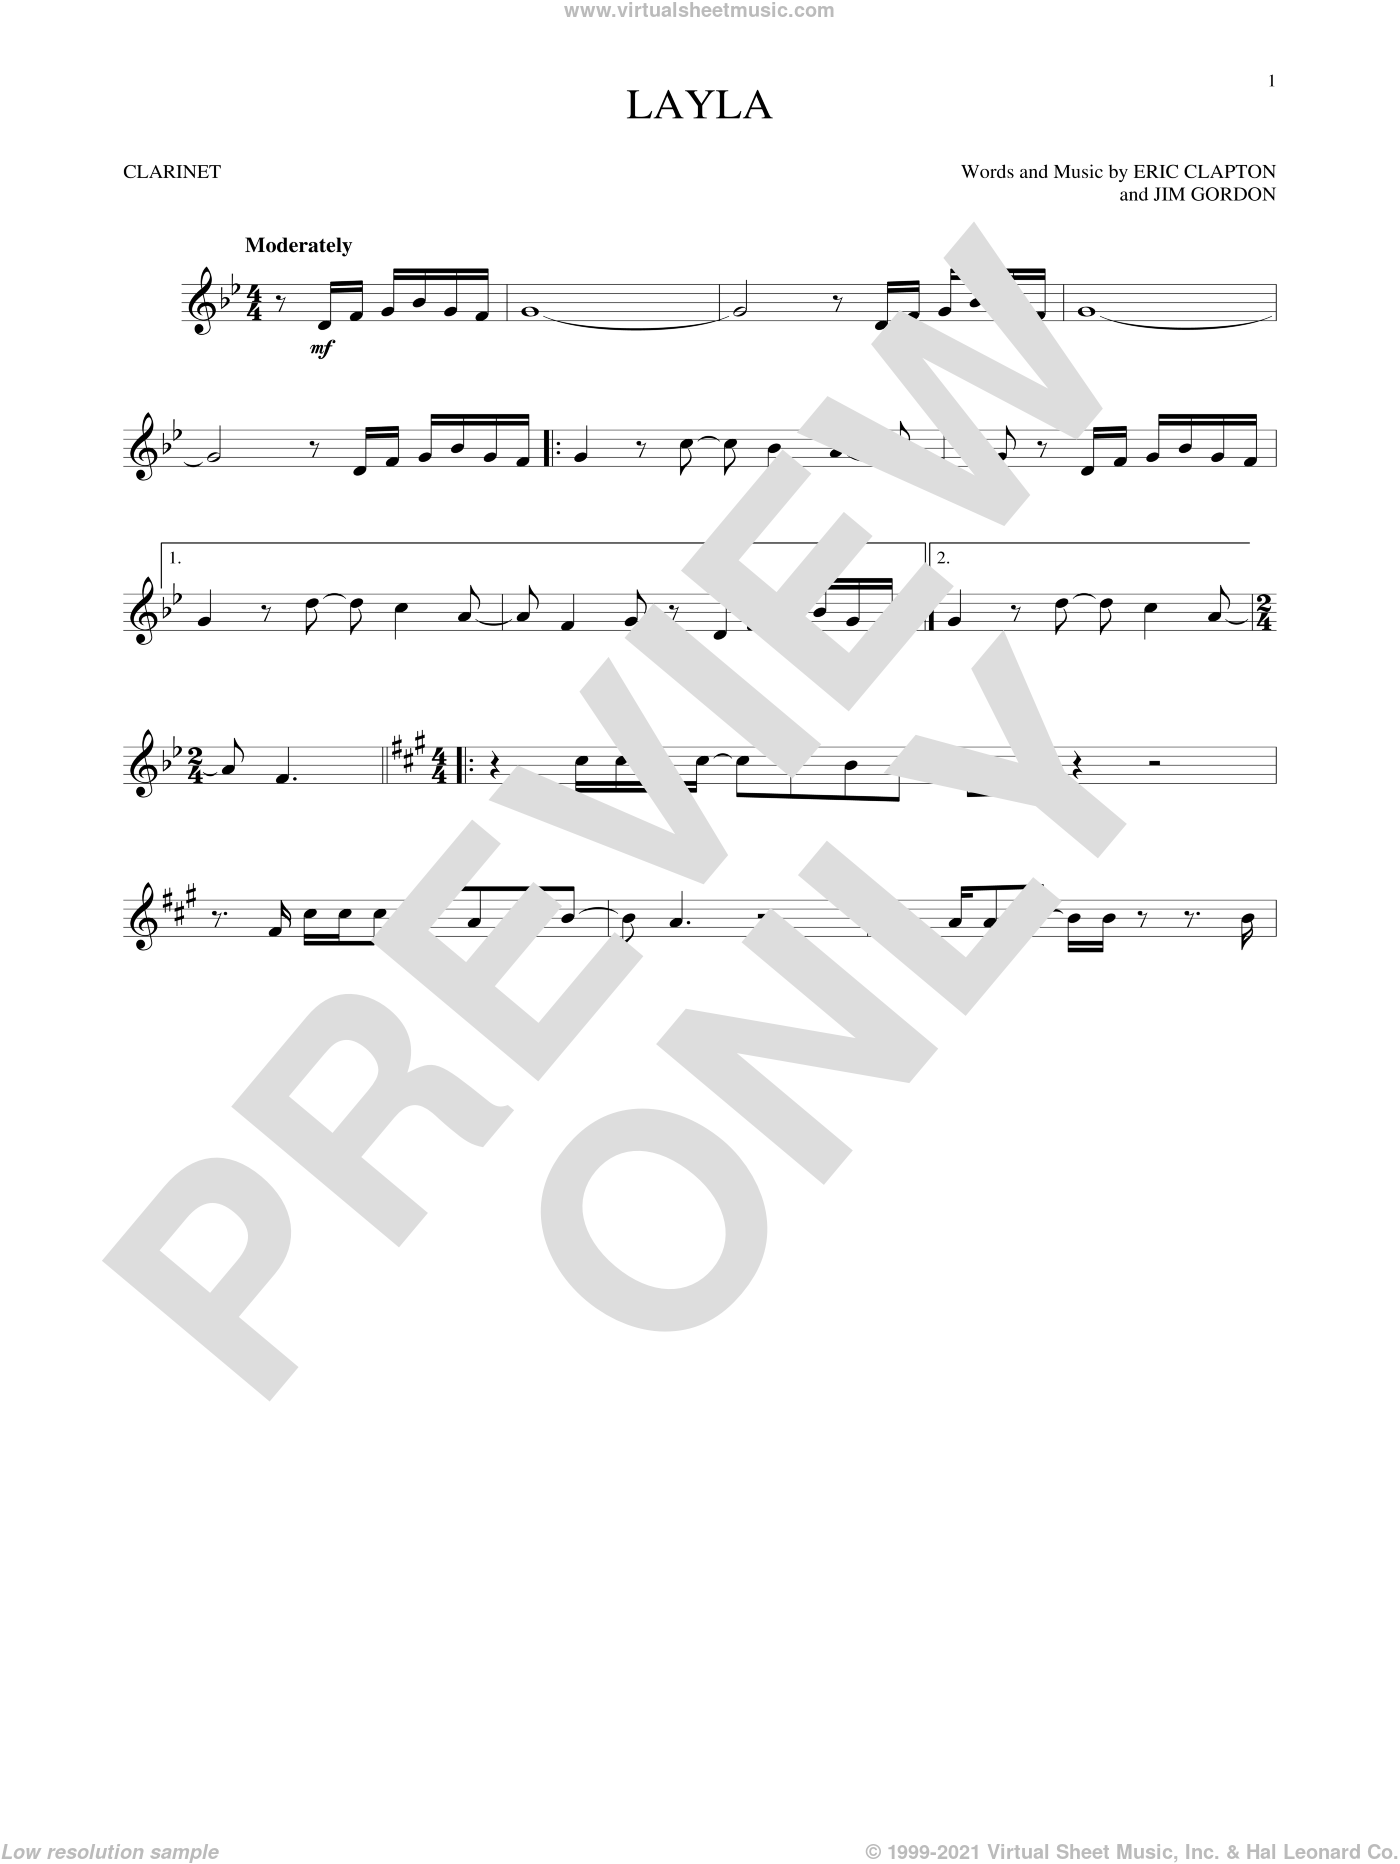 Layla sheet music for clarinet solo by Eric Clapton, Derek And The Dominos and Jim Gordon, intermediate skill level